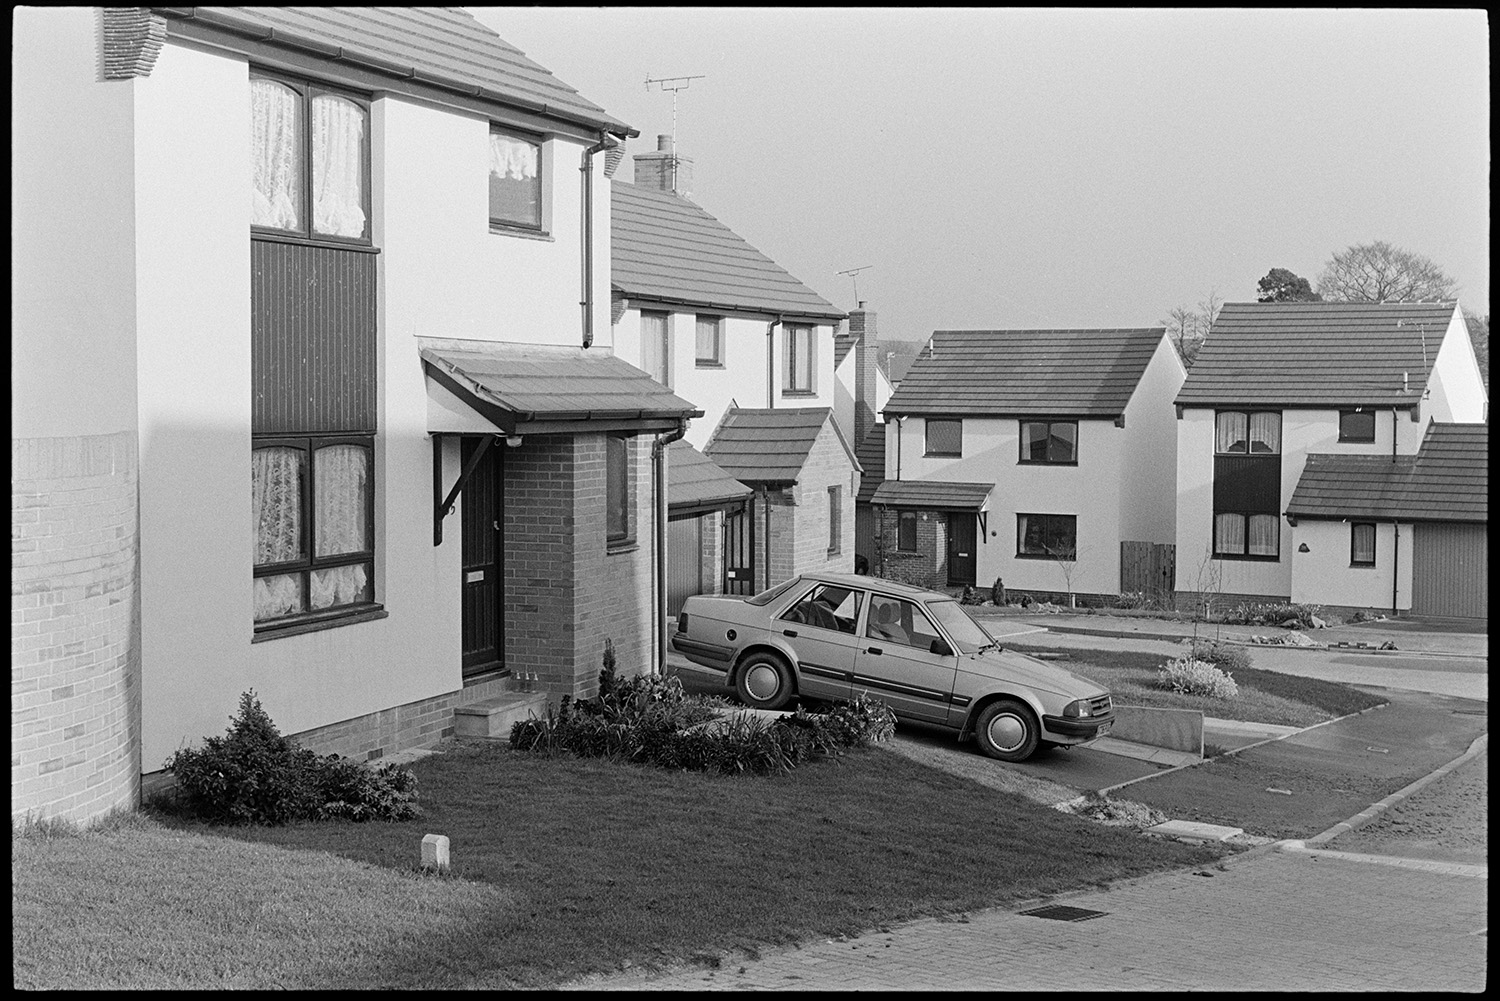 New housing estate. <br /> [Houses on a new housing estate in South Molton. A car is parked in the driveway of the house in the foreground.]